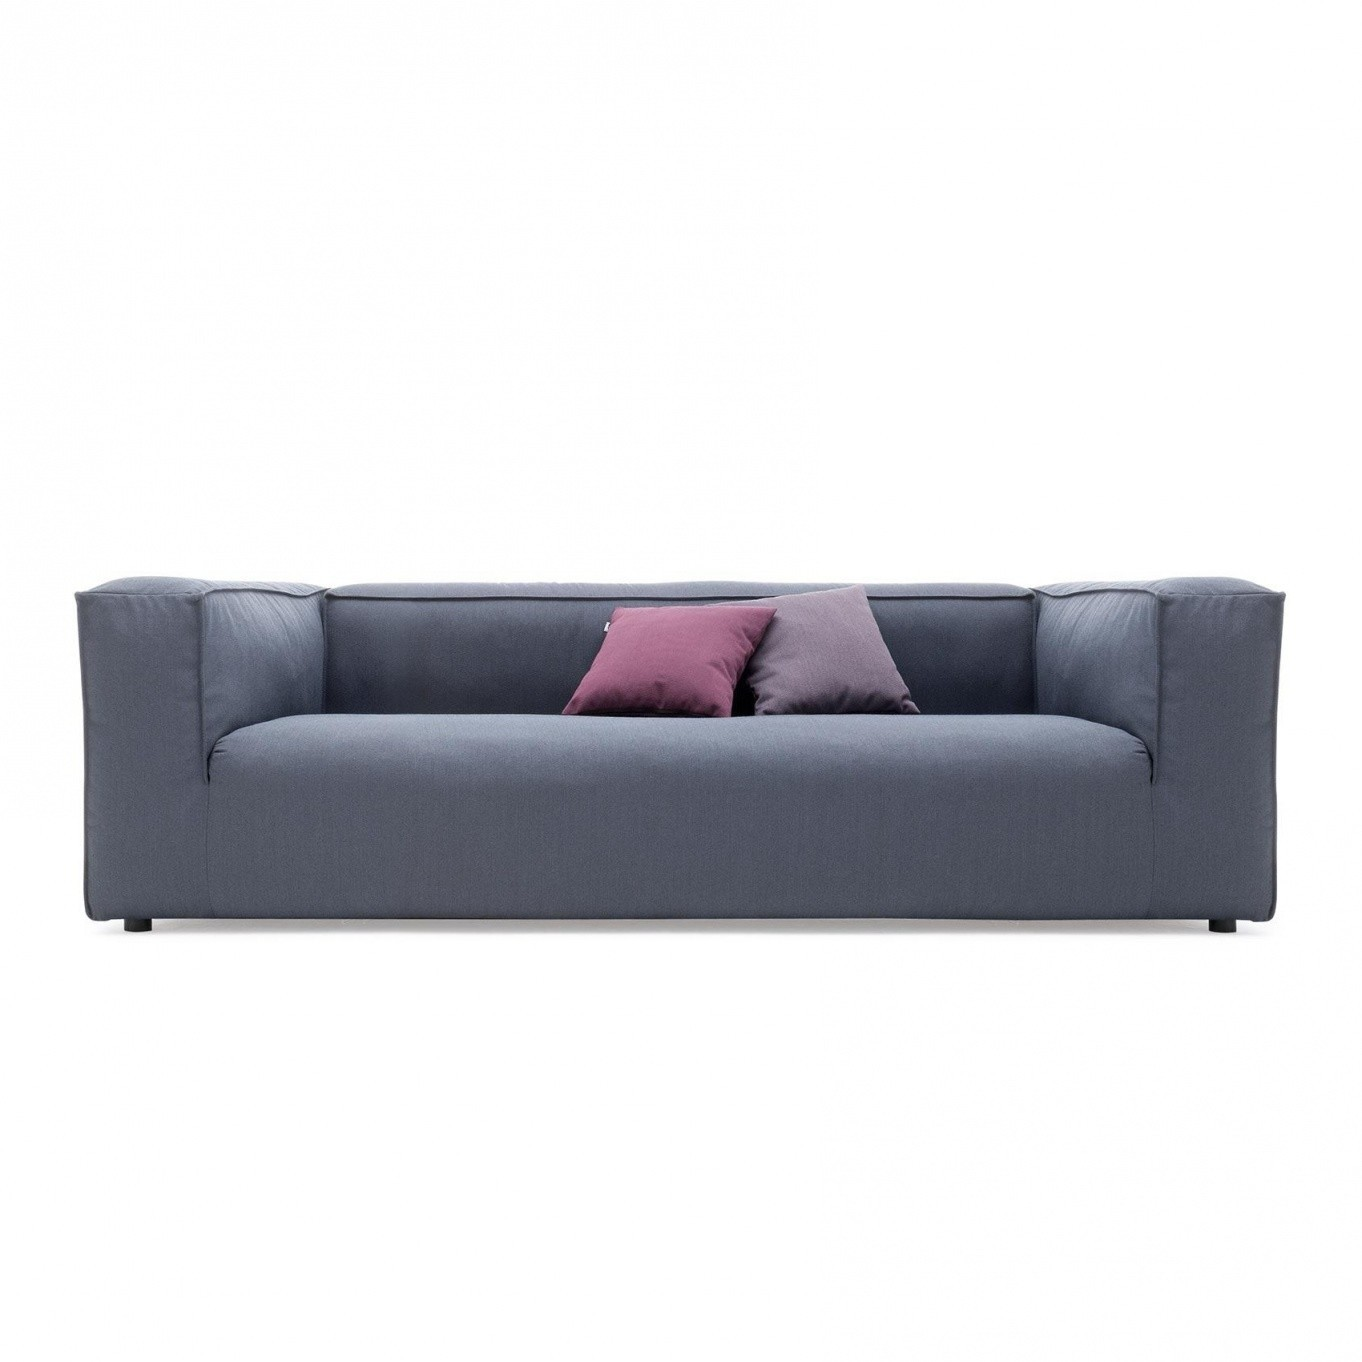 Rolf Benz Sofa Freistil Freistil 175 3 Seater Sofa